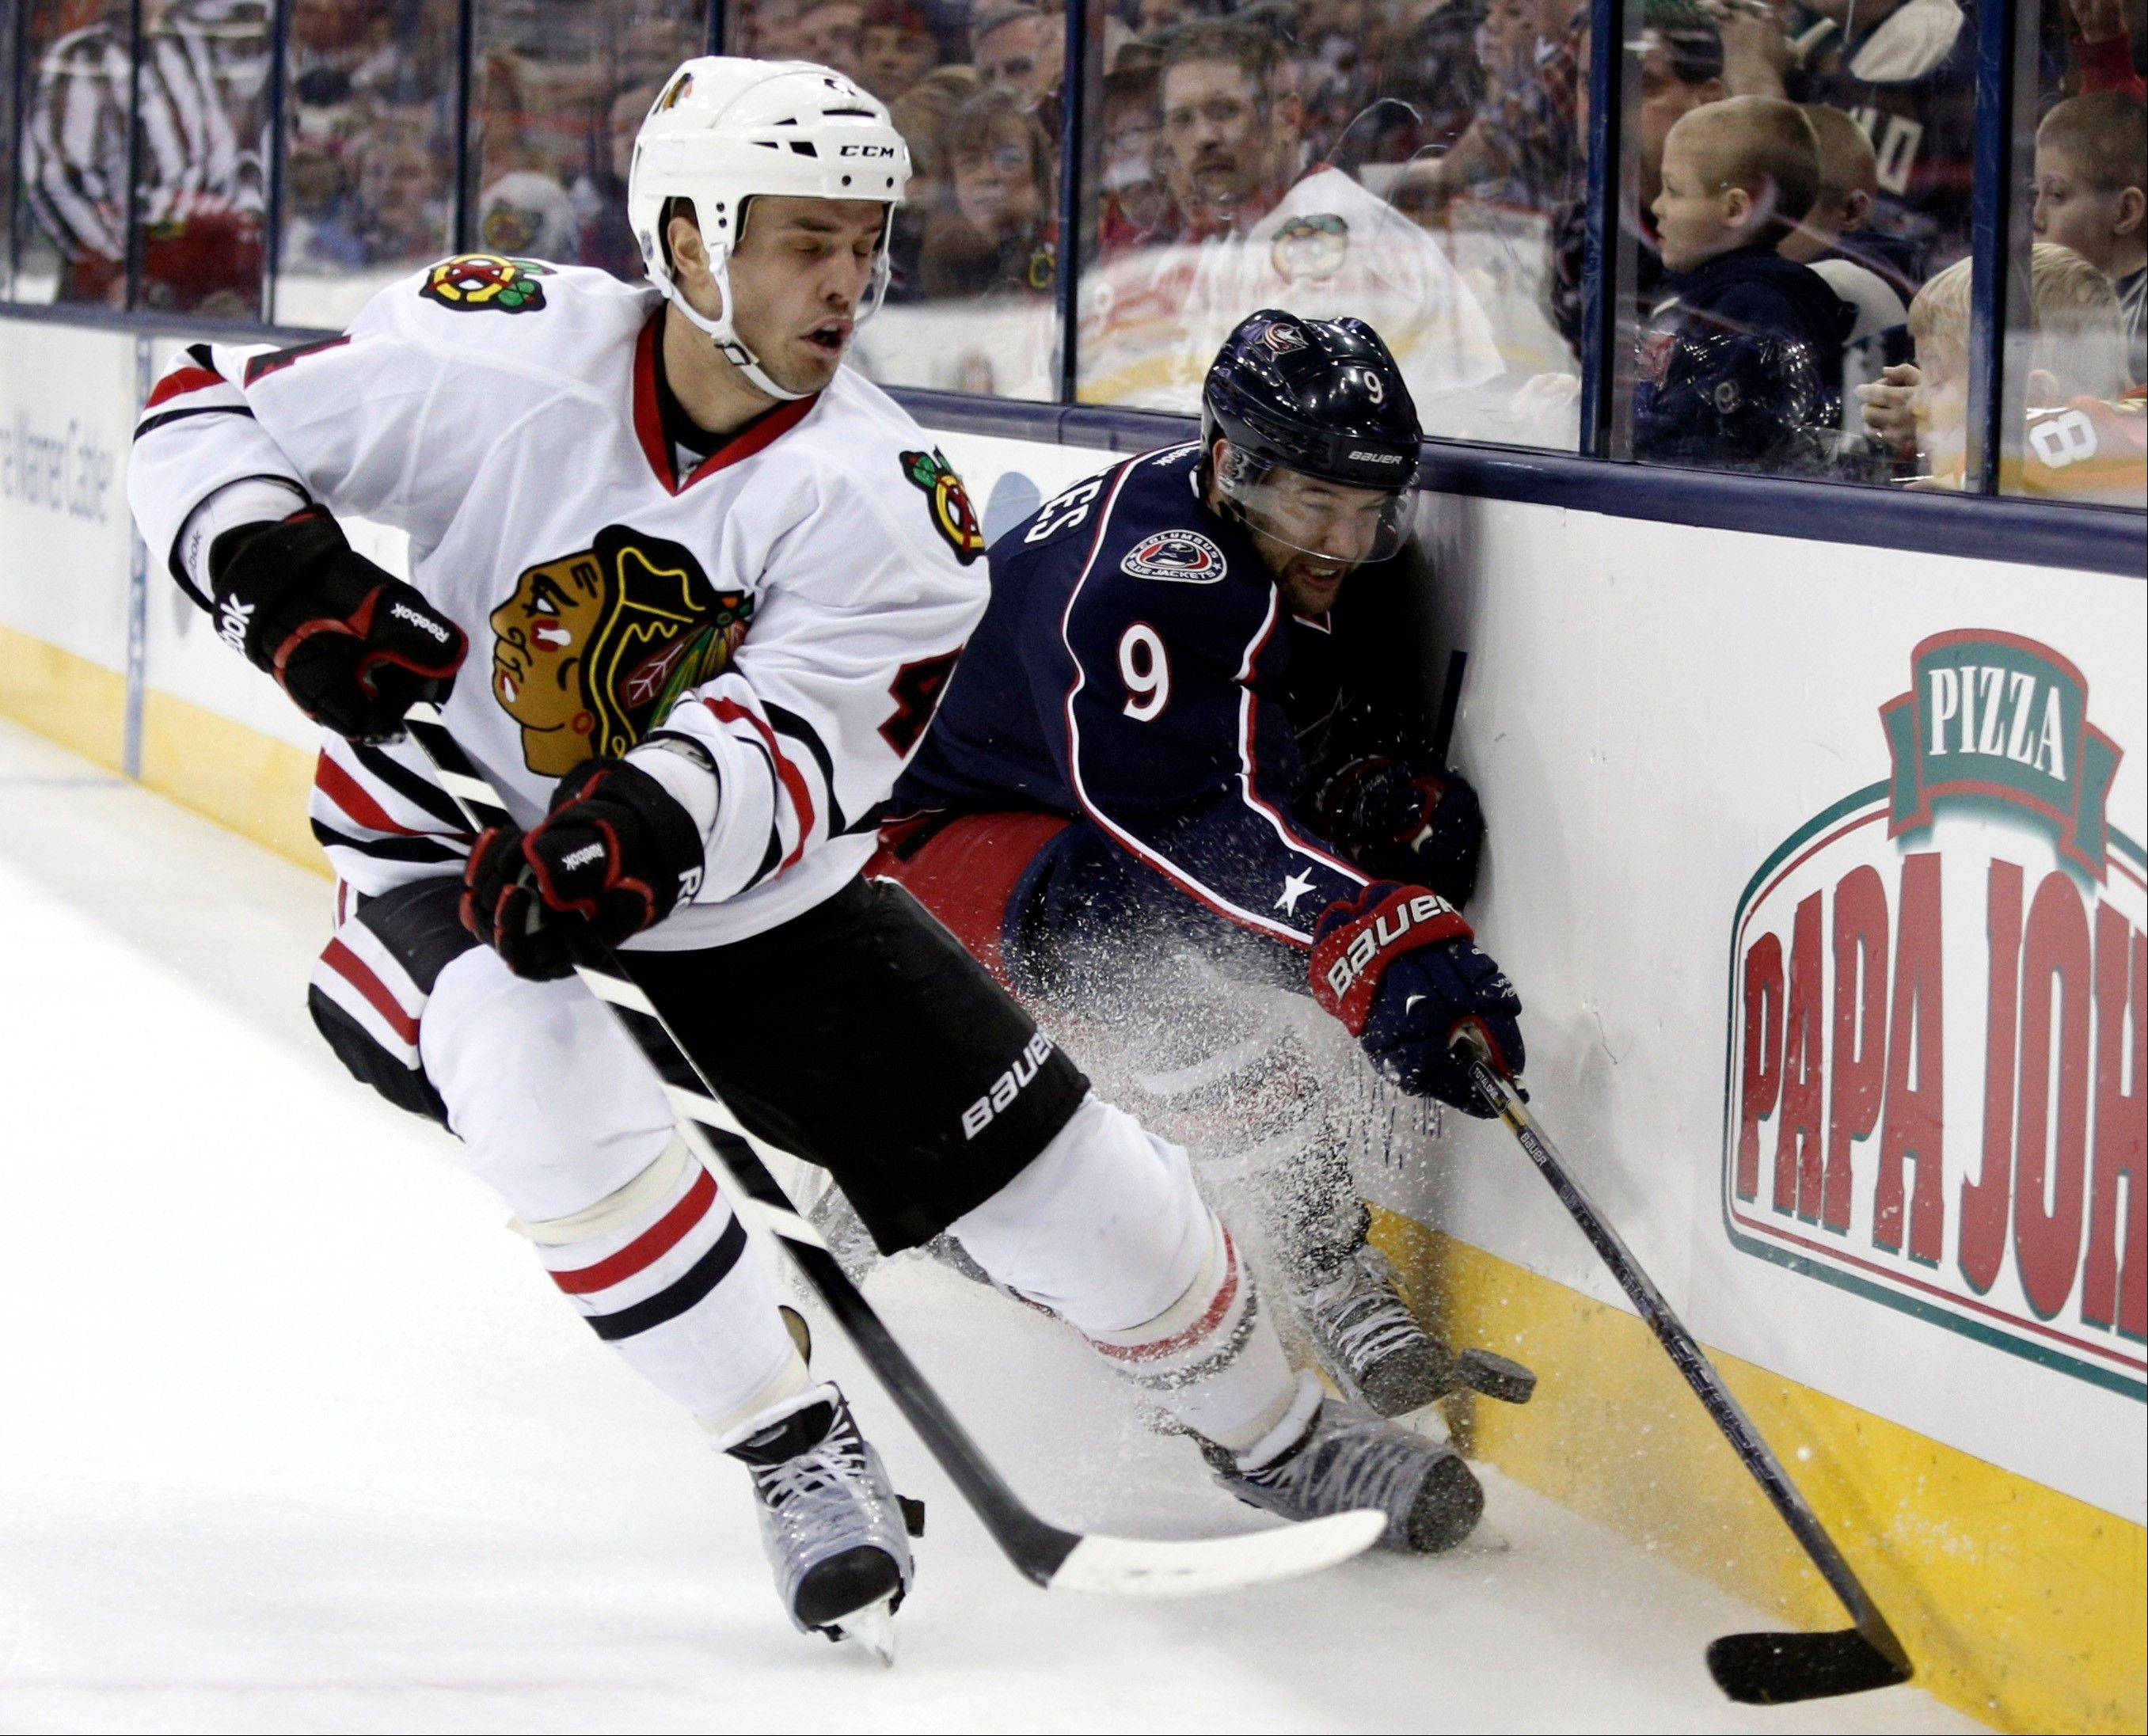 Chicago Blackhawks� Niklas Hjalmarsson, left, of Sweden works for the puck against Columbus Blue Jackets� Colton Gillies during the second period.